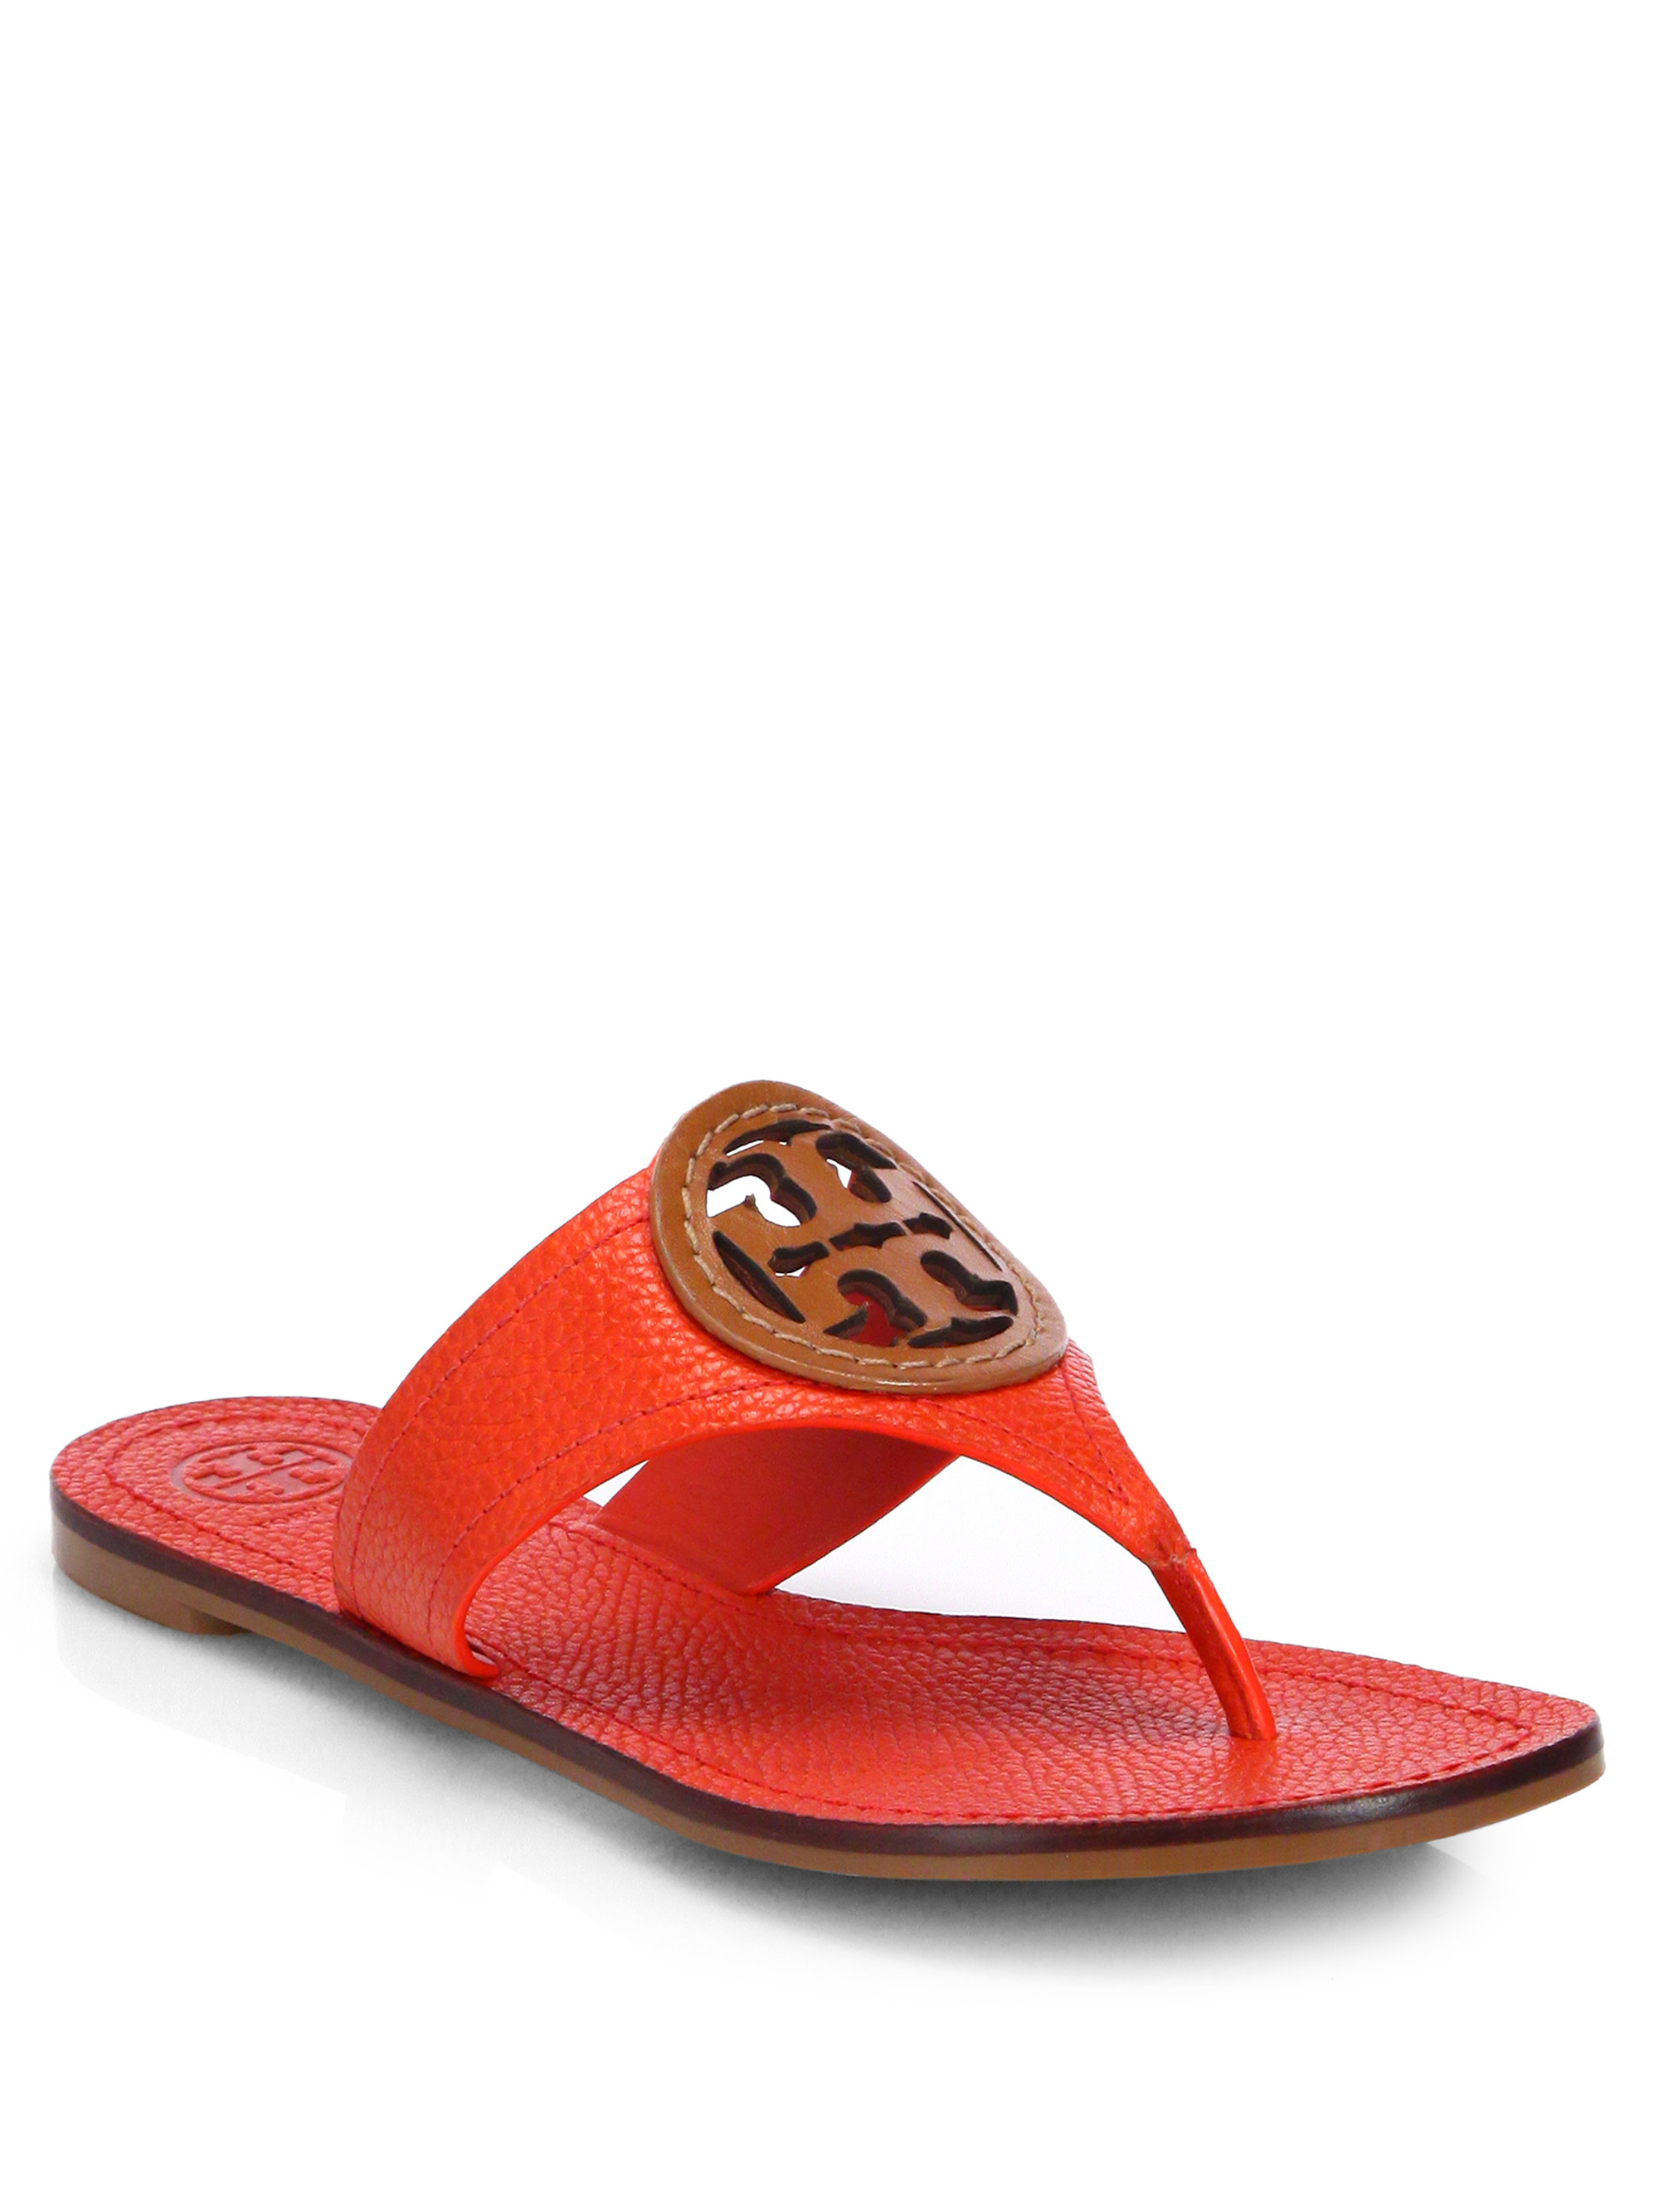 58c94acb118708 Lyst - Tory Burch Louisa Leather Thong Sandals in Red